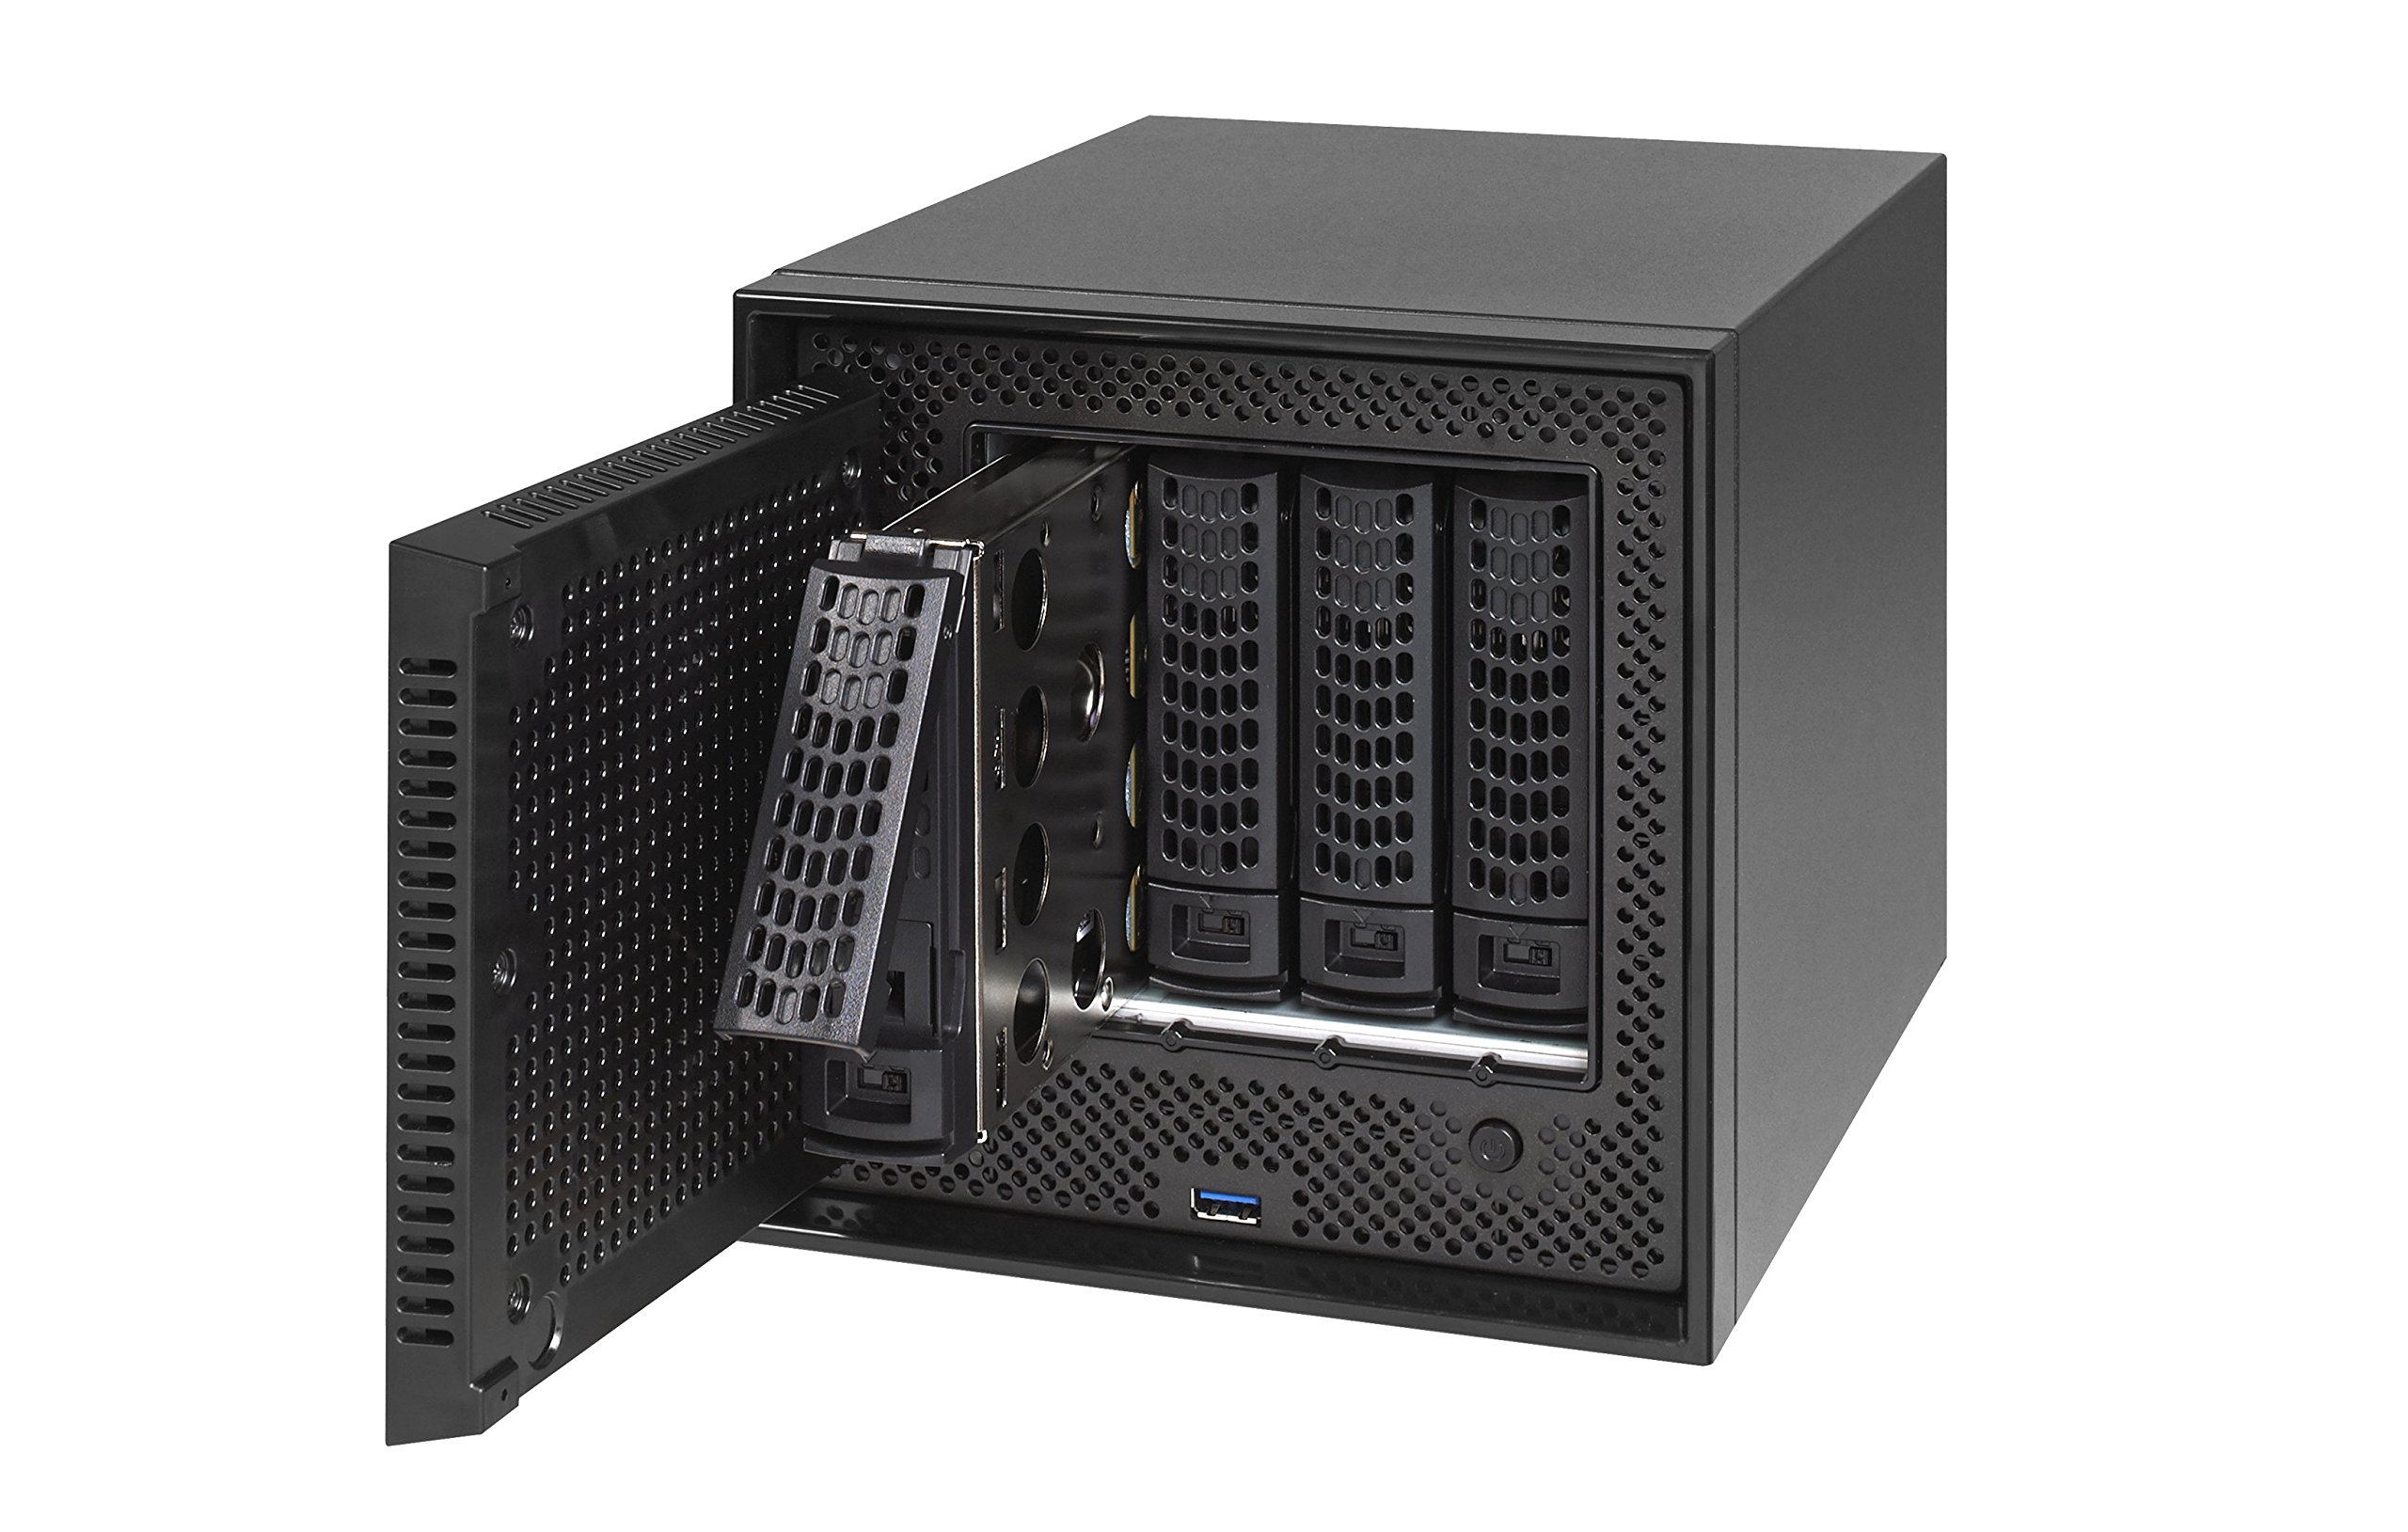 NETGEAR ReadyNAS RN524X00 4 Bay Diskless Premium Performance NAS, 40TB Capacity Network Attached Storage, Intel 2.2GHz Dual Core Processor, 4GB RAM 6 PREMIUM PERFORMANCE - Up to 20 gigabit per second data access, powered by a server processor 10G CONNECTIVITY - Utilize your 10G infrastructure for fast data sharing and backup throughput HIGH-PERFORMANCE - Get 2x faster business application processing with the latest 64-bit technology